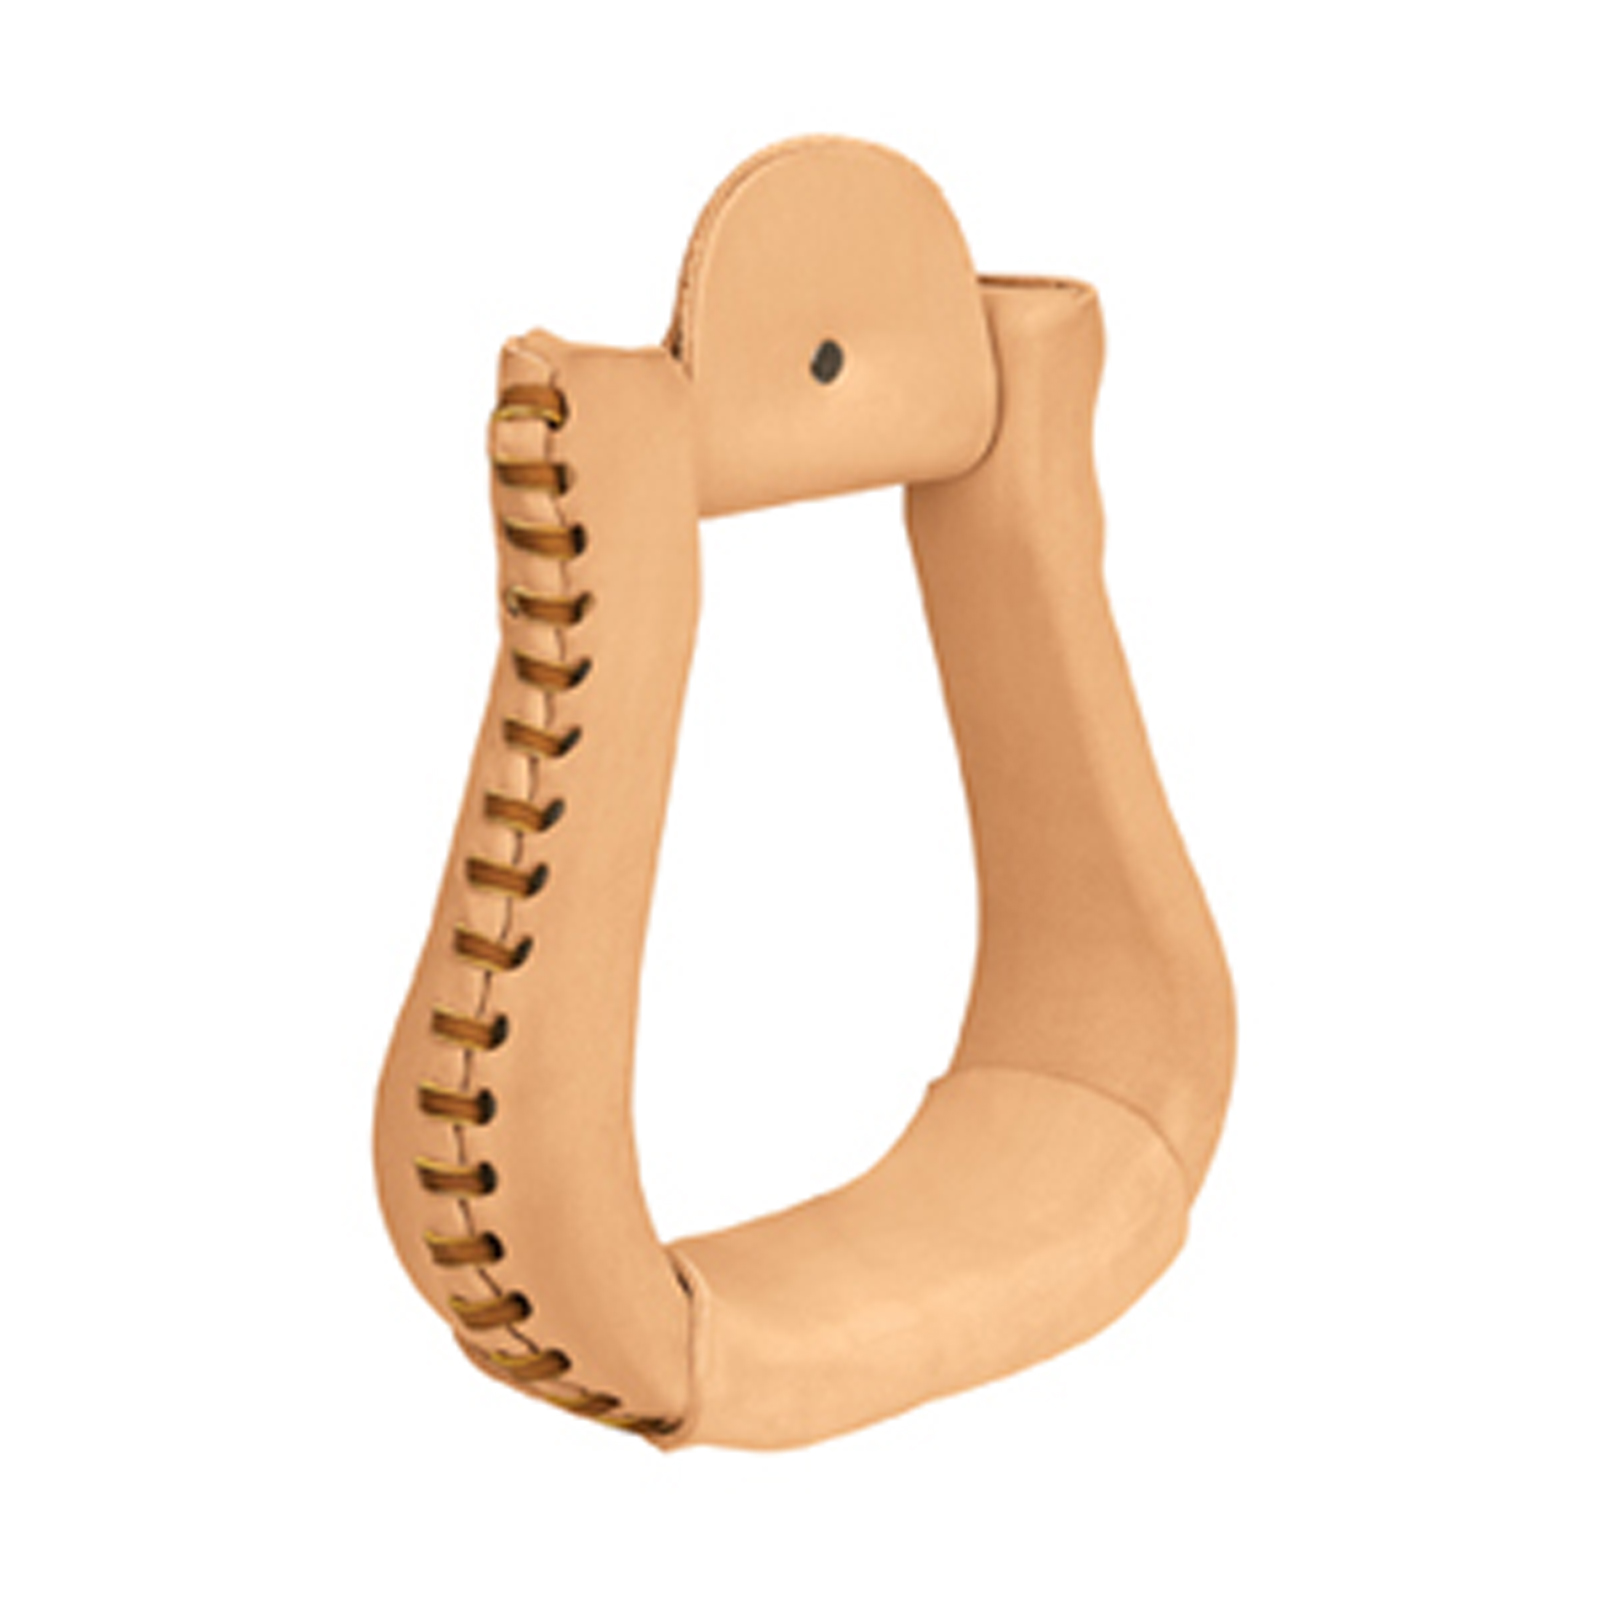 Weaver Natural Leather Covered Bell Stirrup